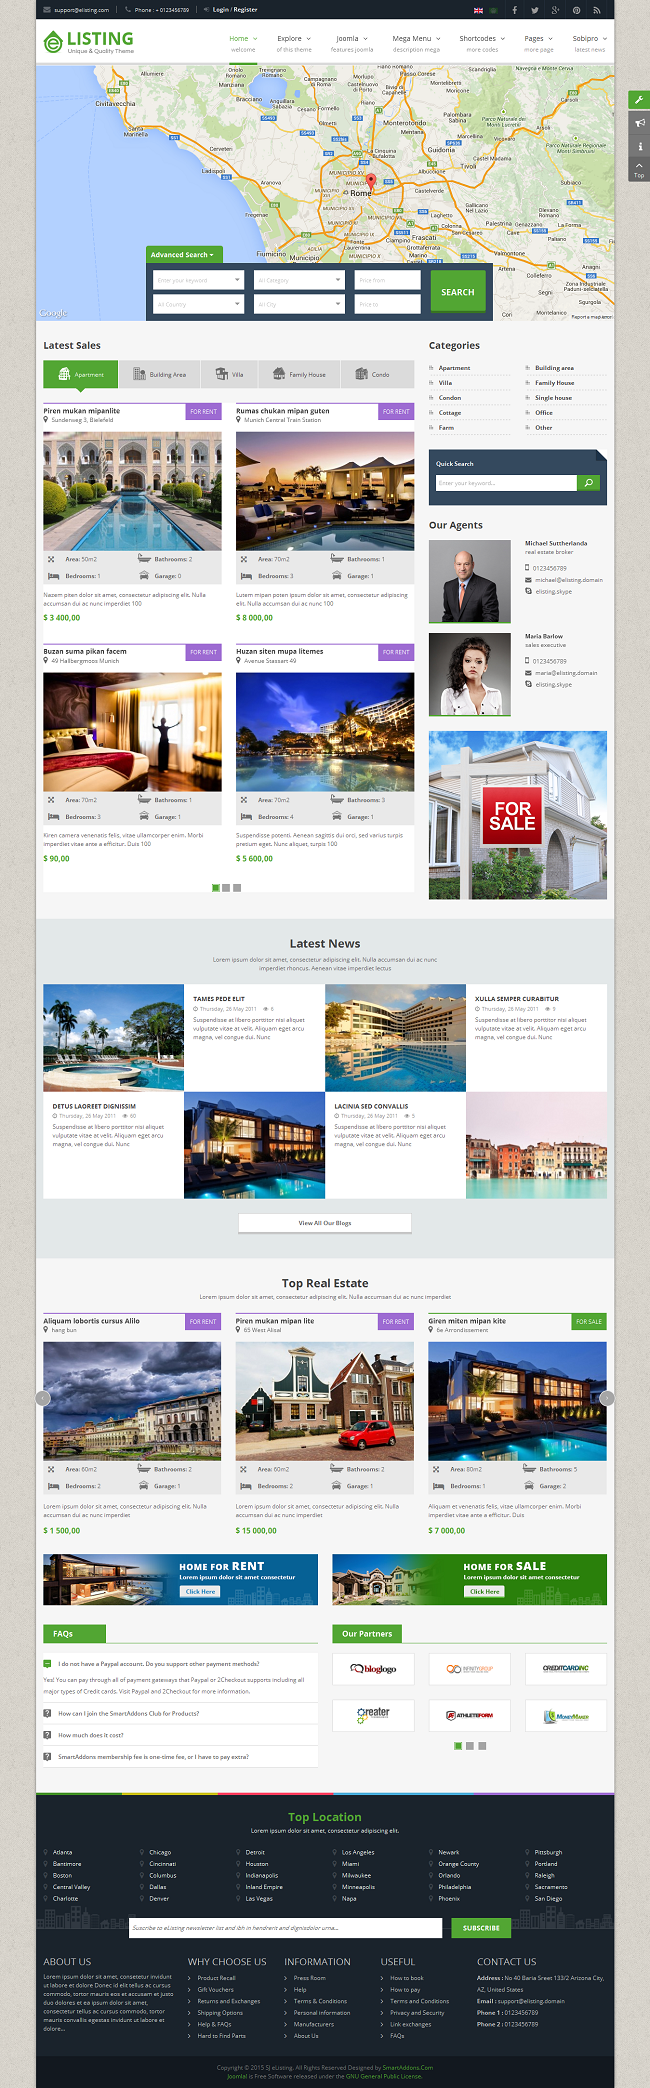 SJ eListing - Responsive Joomla Estate Template - 03_index-boxed-layout.png